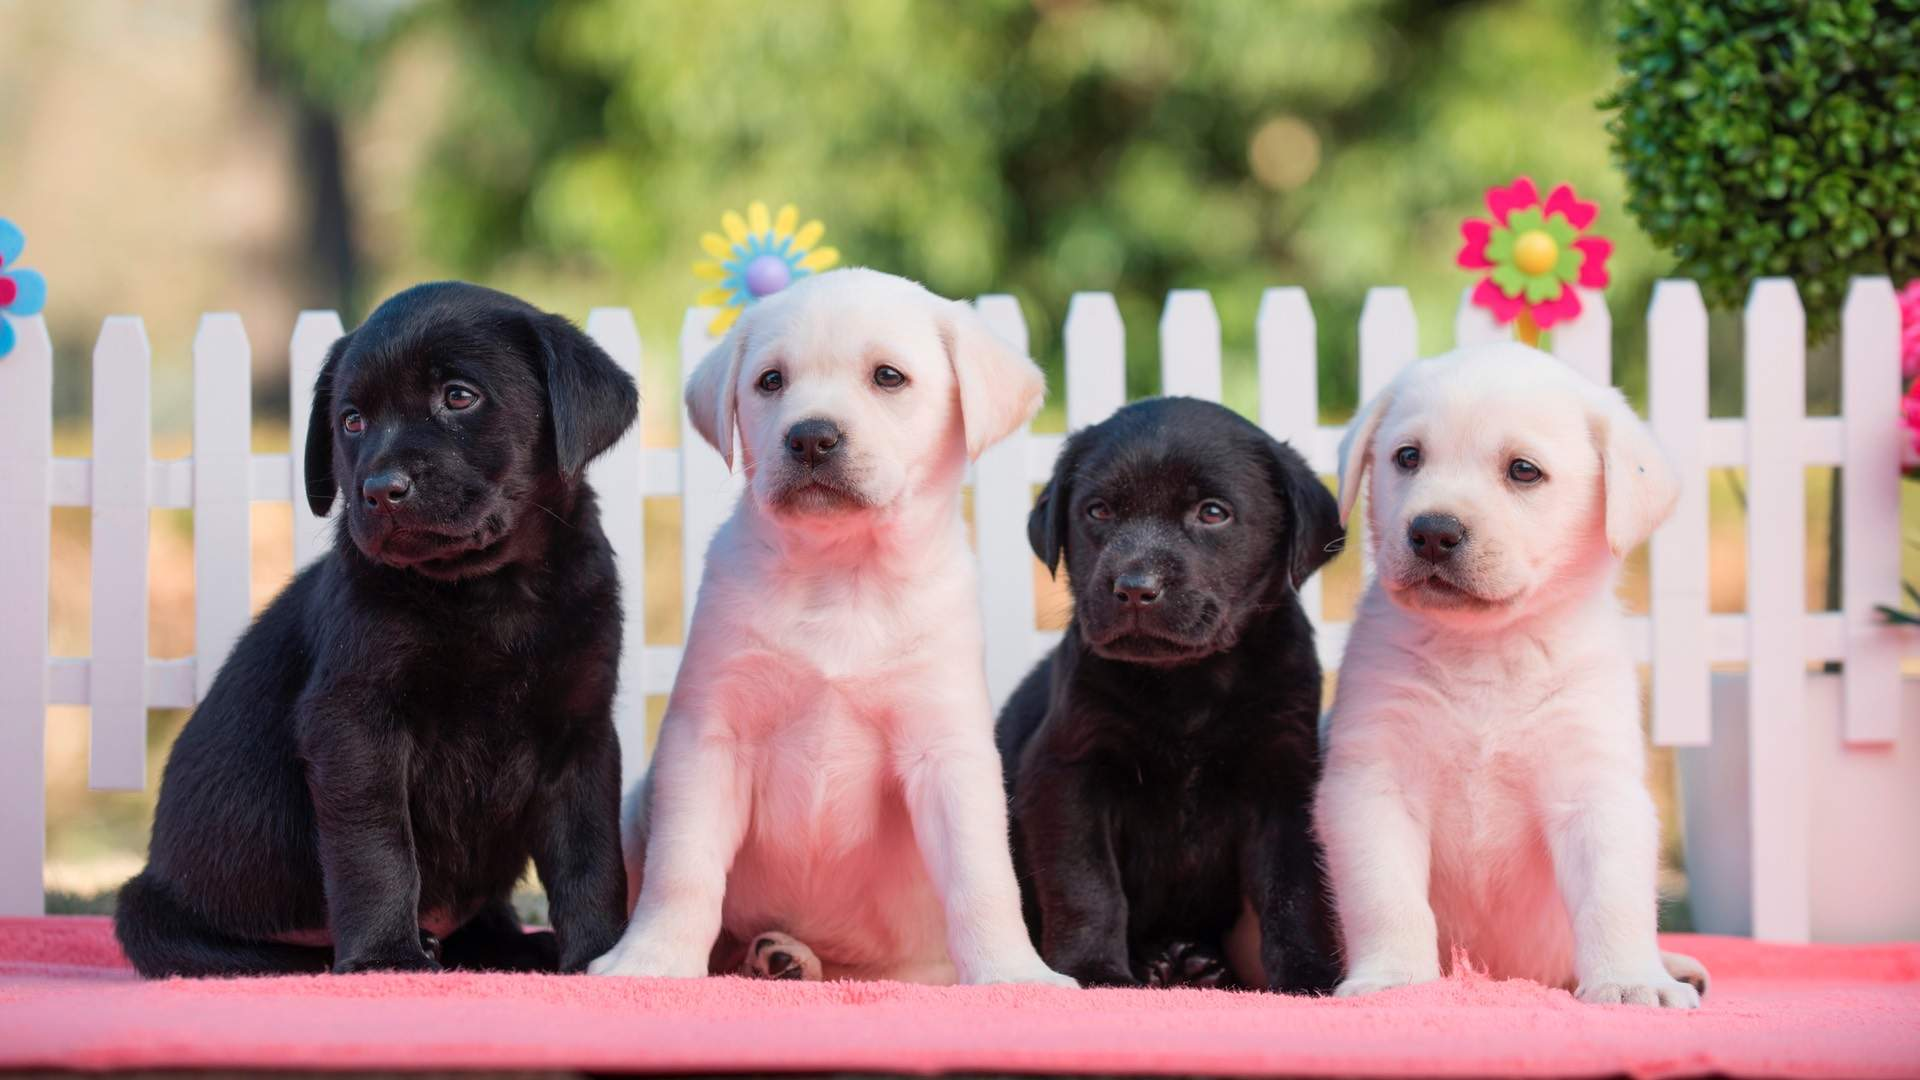 You Can Raise Funds For Guide Dogs Australia by Walking Your Furry Friend This August